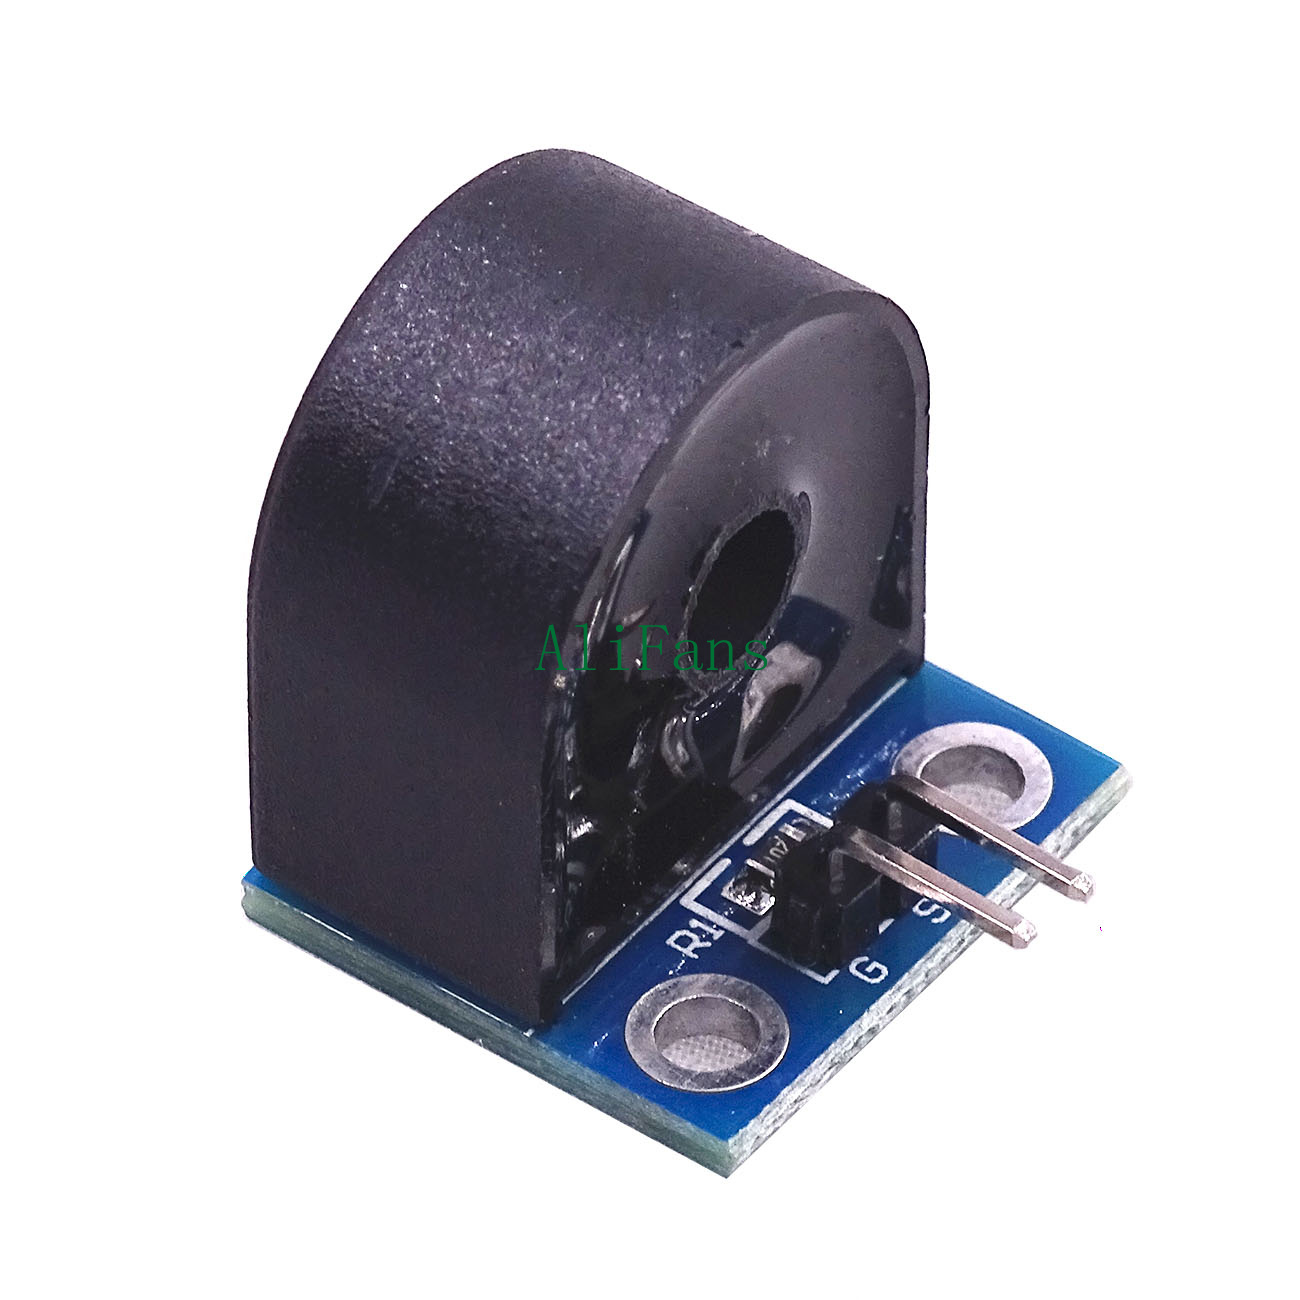 5A Range Single Phase AC Current Transformer Sensor Module ZMCT103C for Arduino